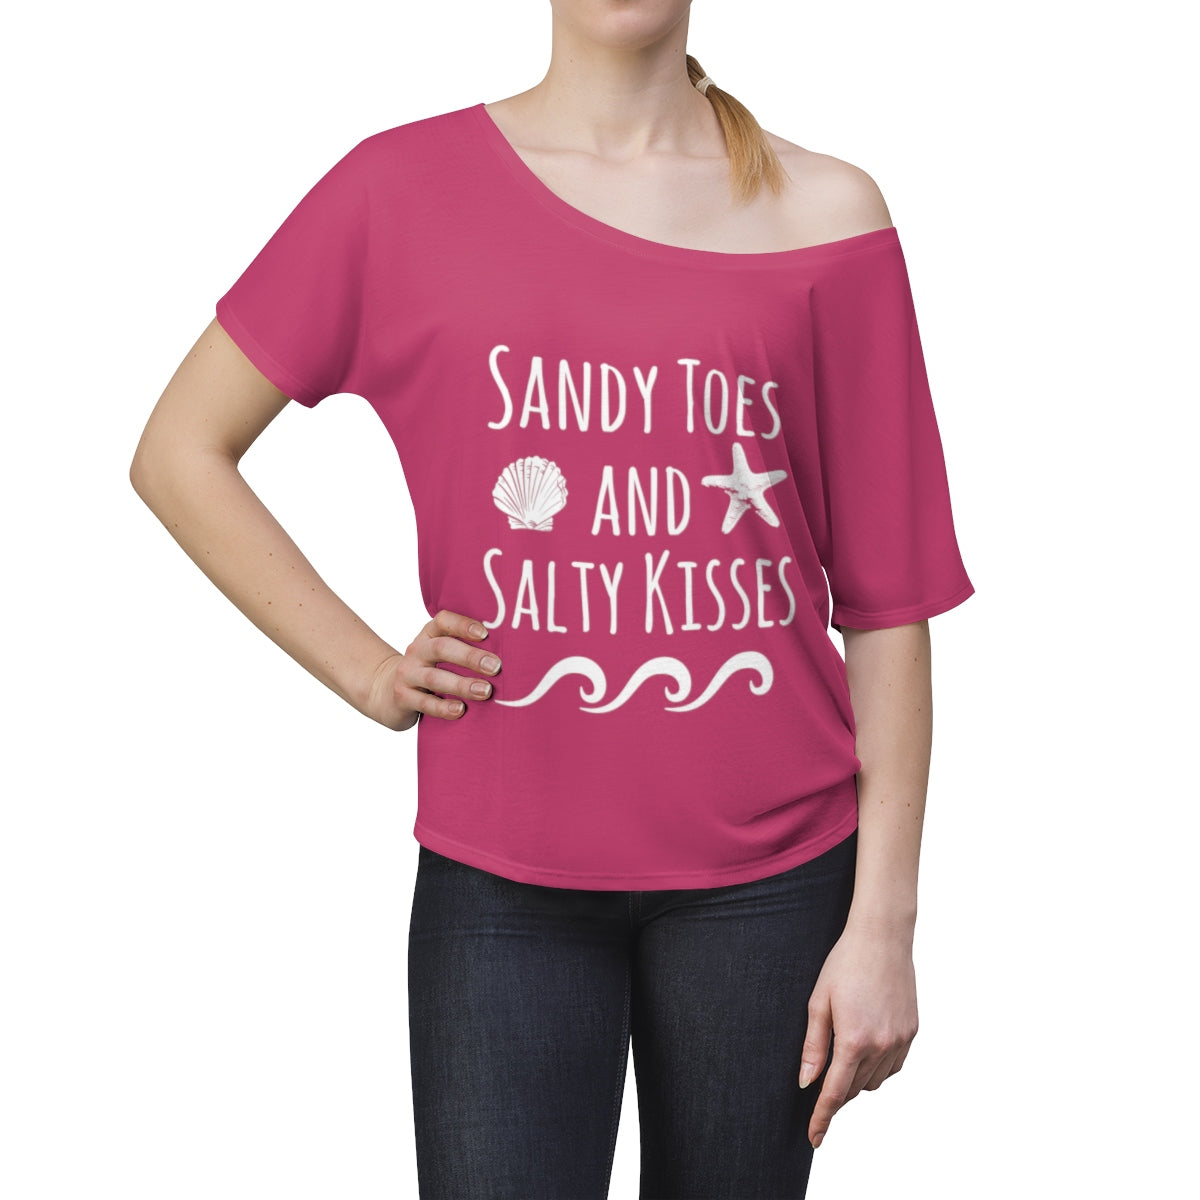 Sandy Toes & Salty Kisses Beach Cover Up Top